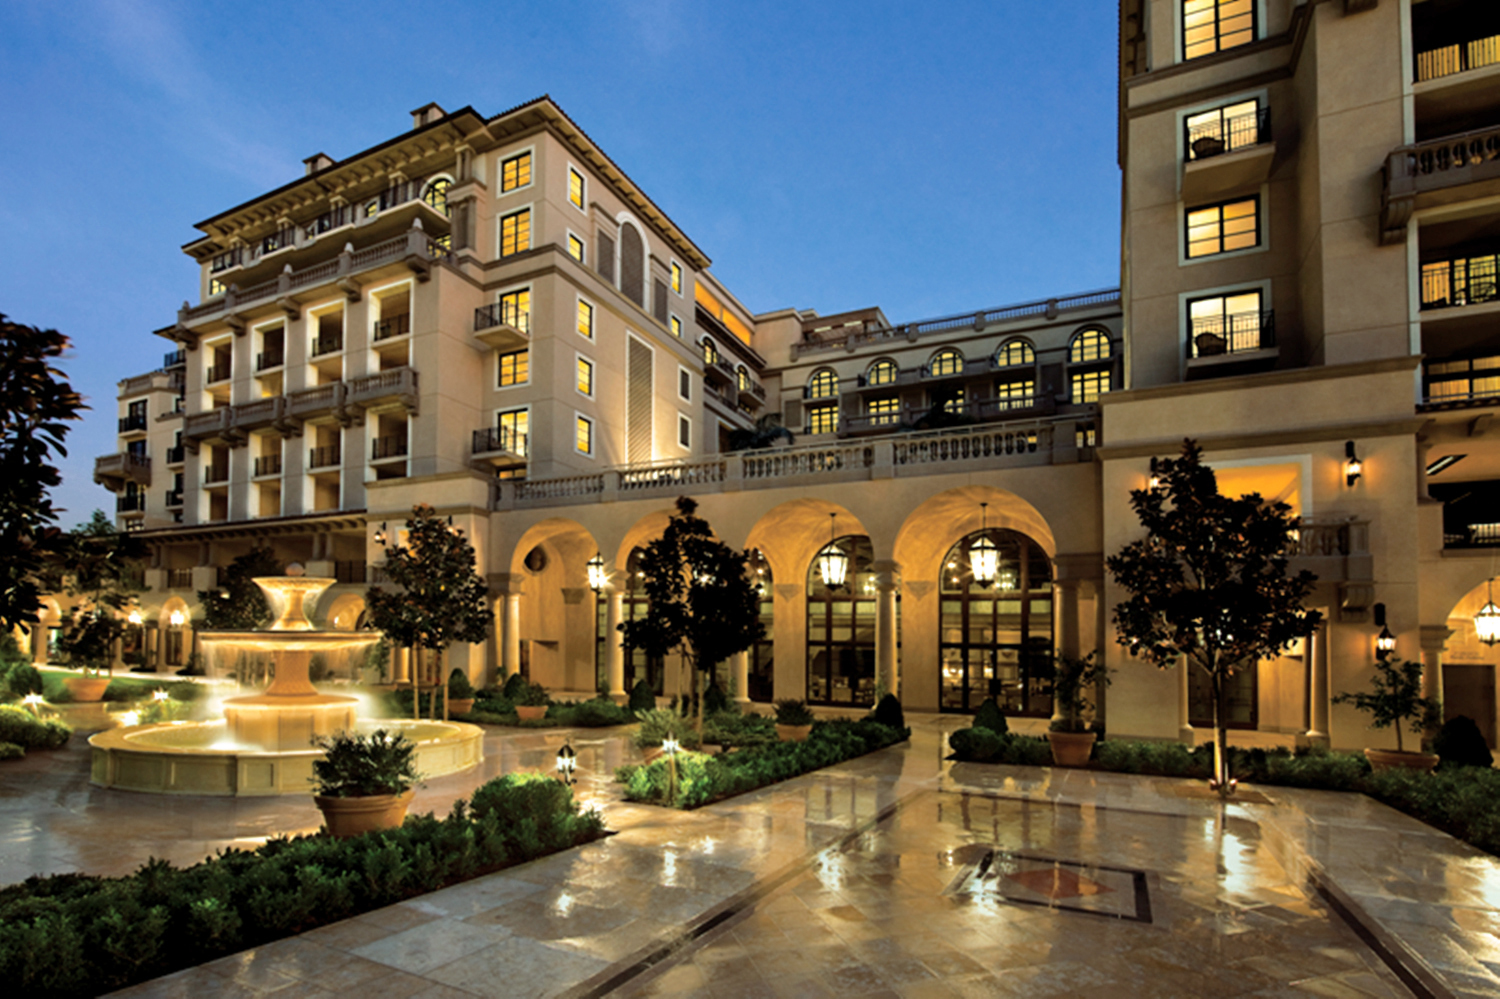 Luxury hotels three peninsula hotels find fame in the u s for Hotel luxury